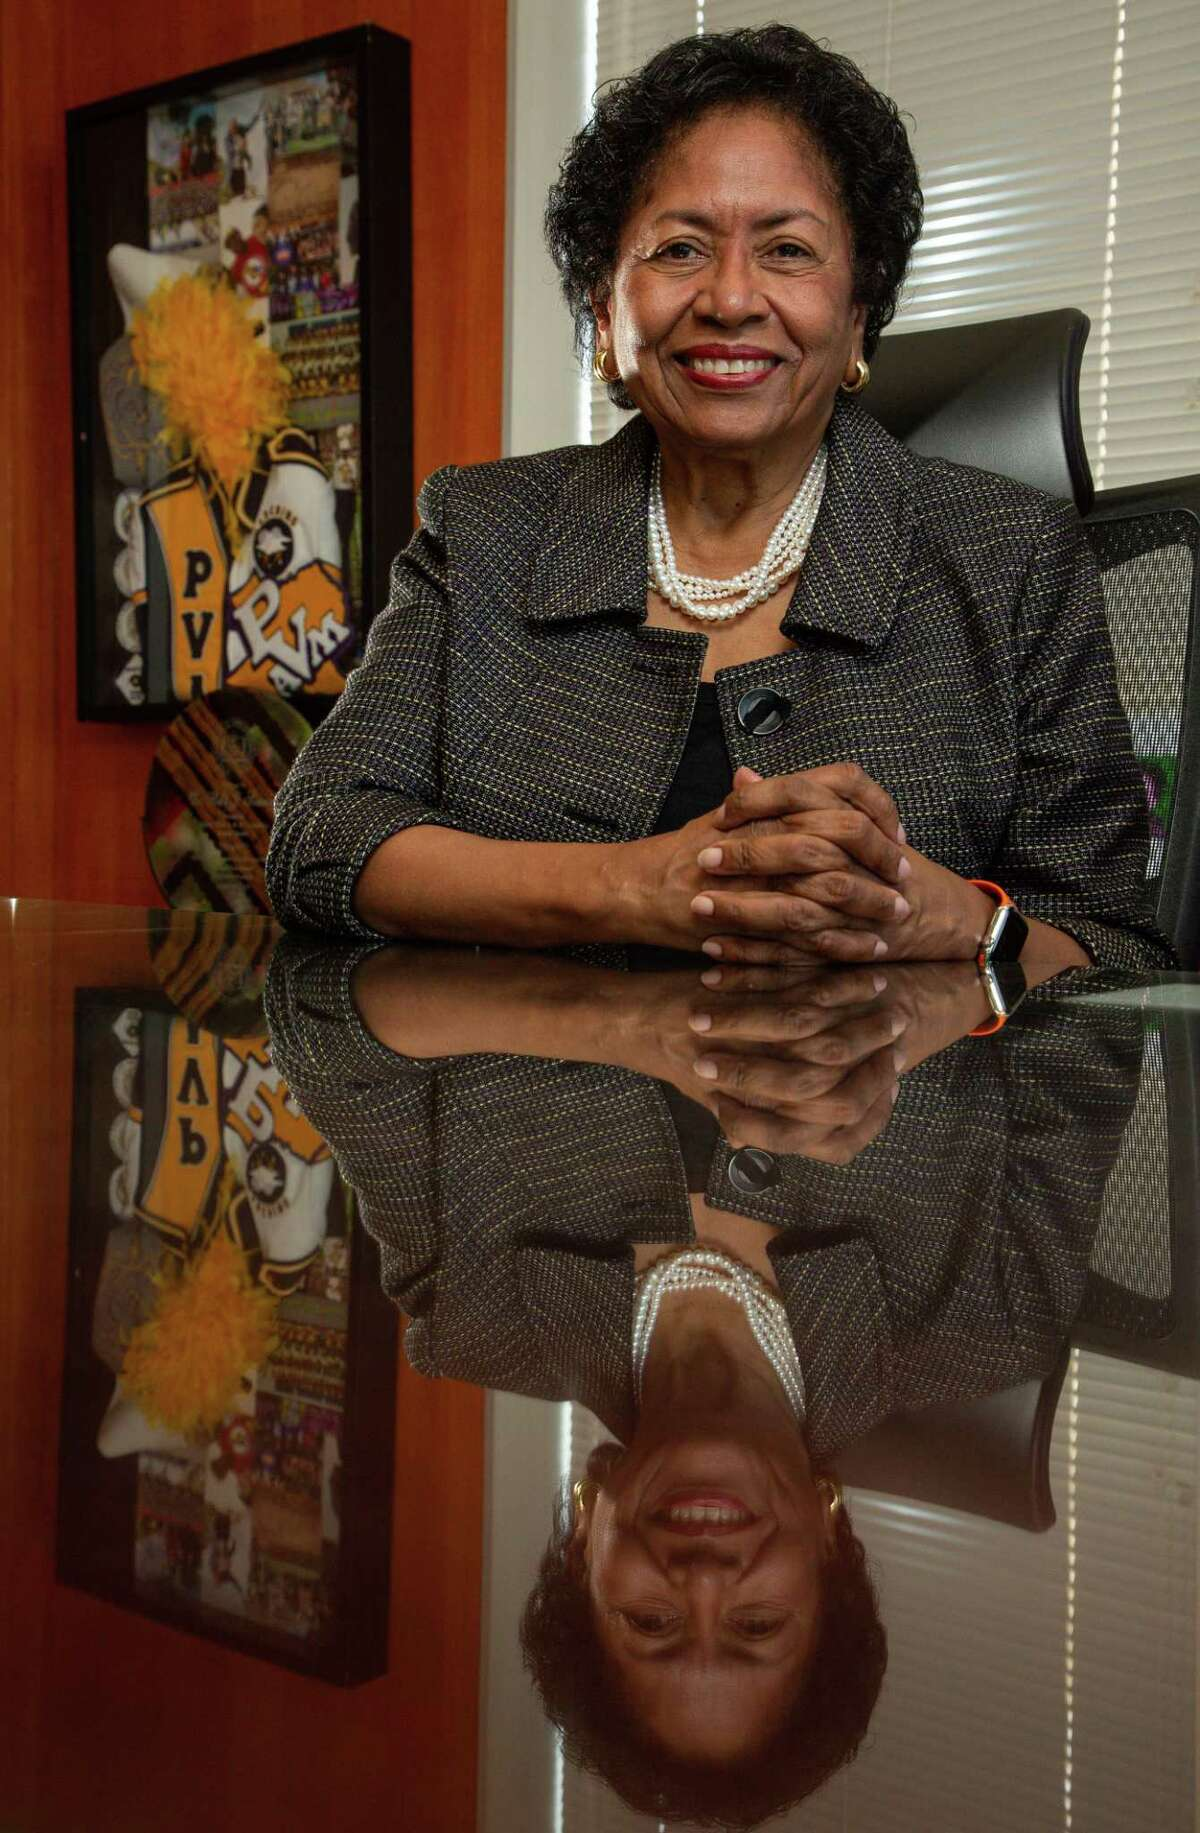 Ruth J. Simmons - president of Prairie View A&M University - poses for a photograph inside her office on Monday, Aug. 16, 2021, in Prairie View. After completing her Ph.D. in Romance Languages and Literatures at Harvard, Simmons served in various faculty and administrative roles at the University of Southern California, Princeton University, and Spelman College before becoming president of Smith College, the largest women's college in the United States. At Smith, she launched a number of important academic initiatives, including an engineering program - the first at an American women's college.